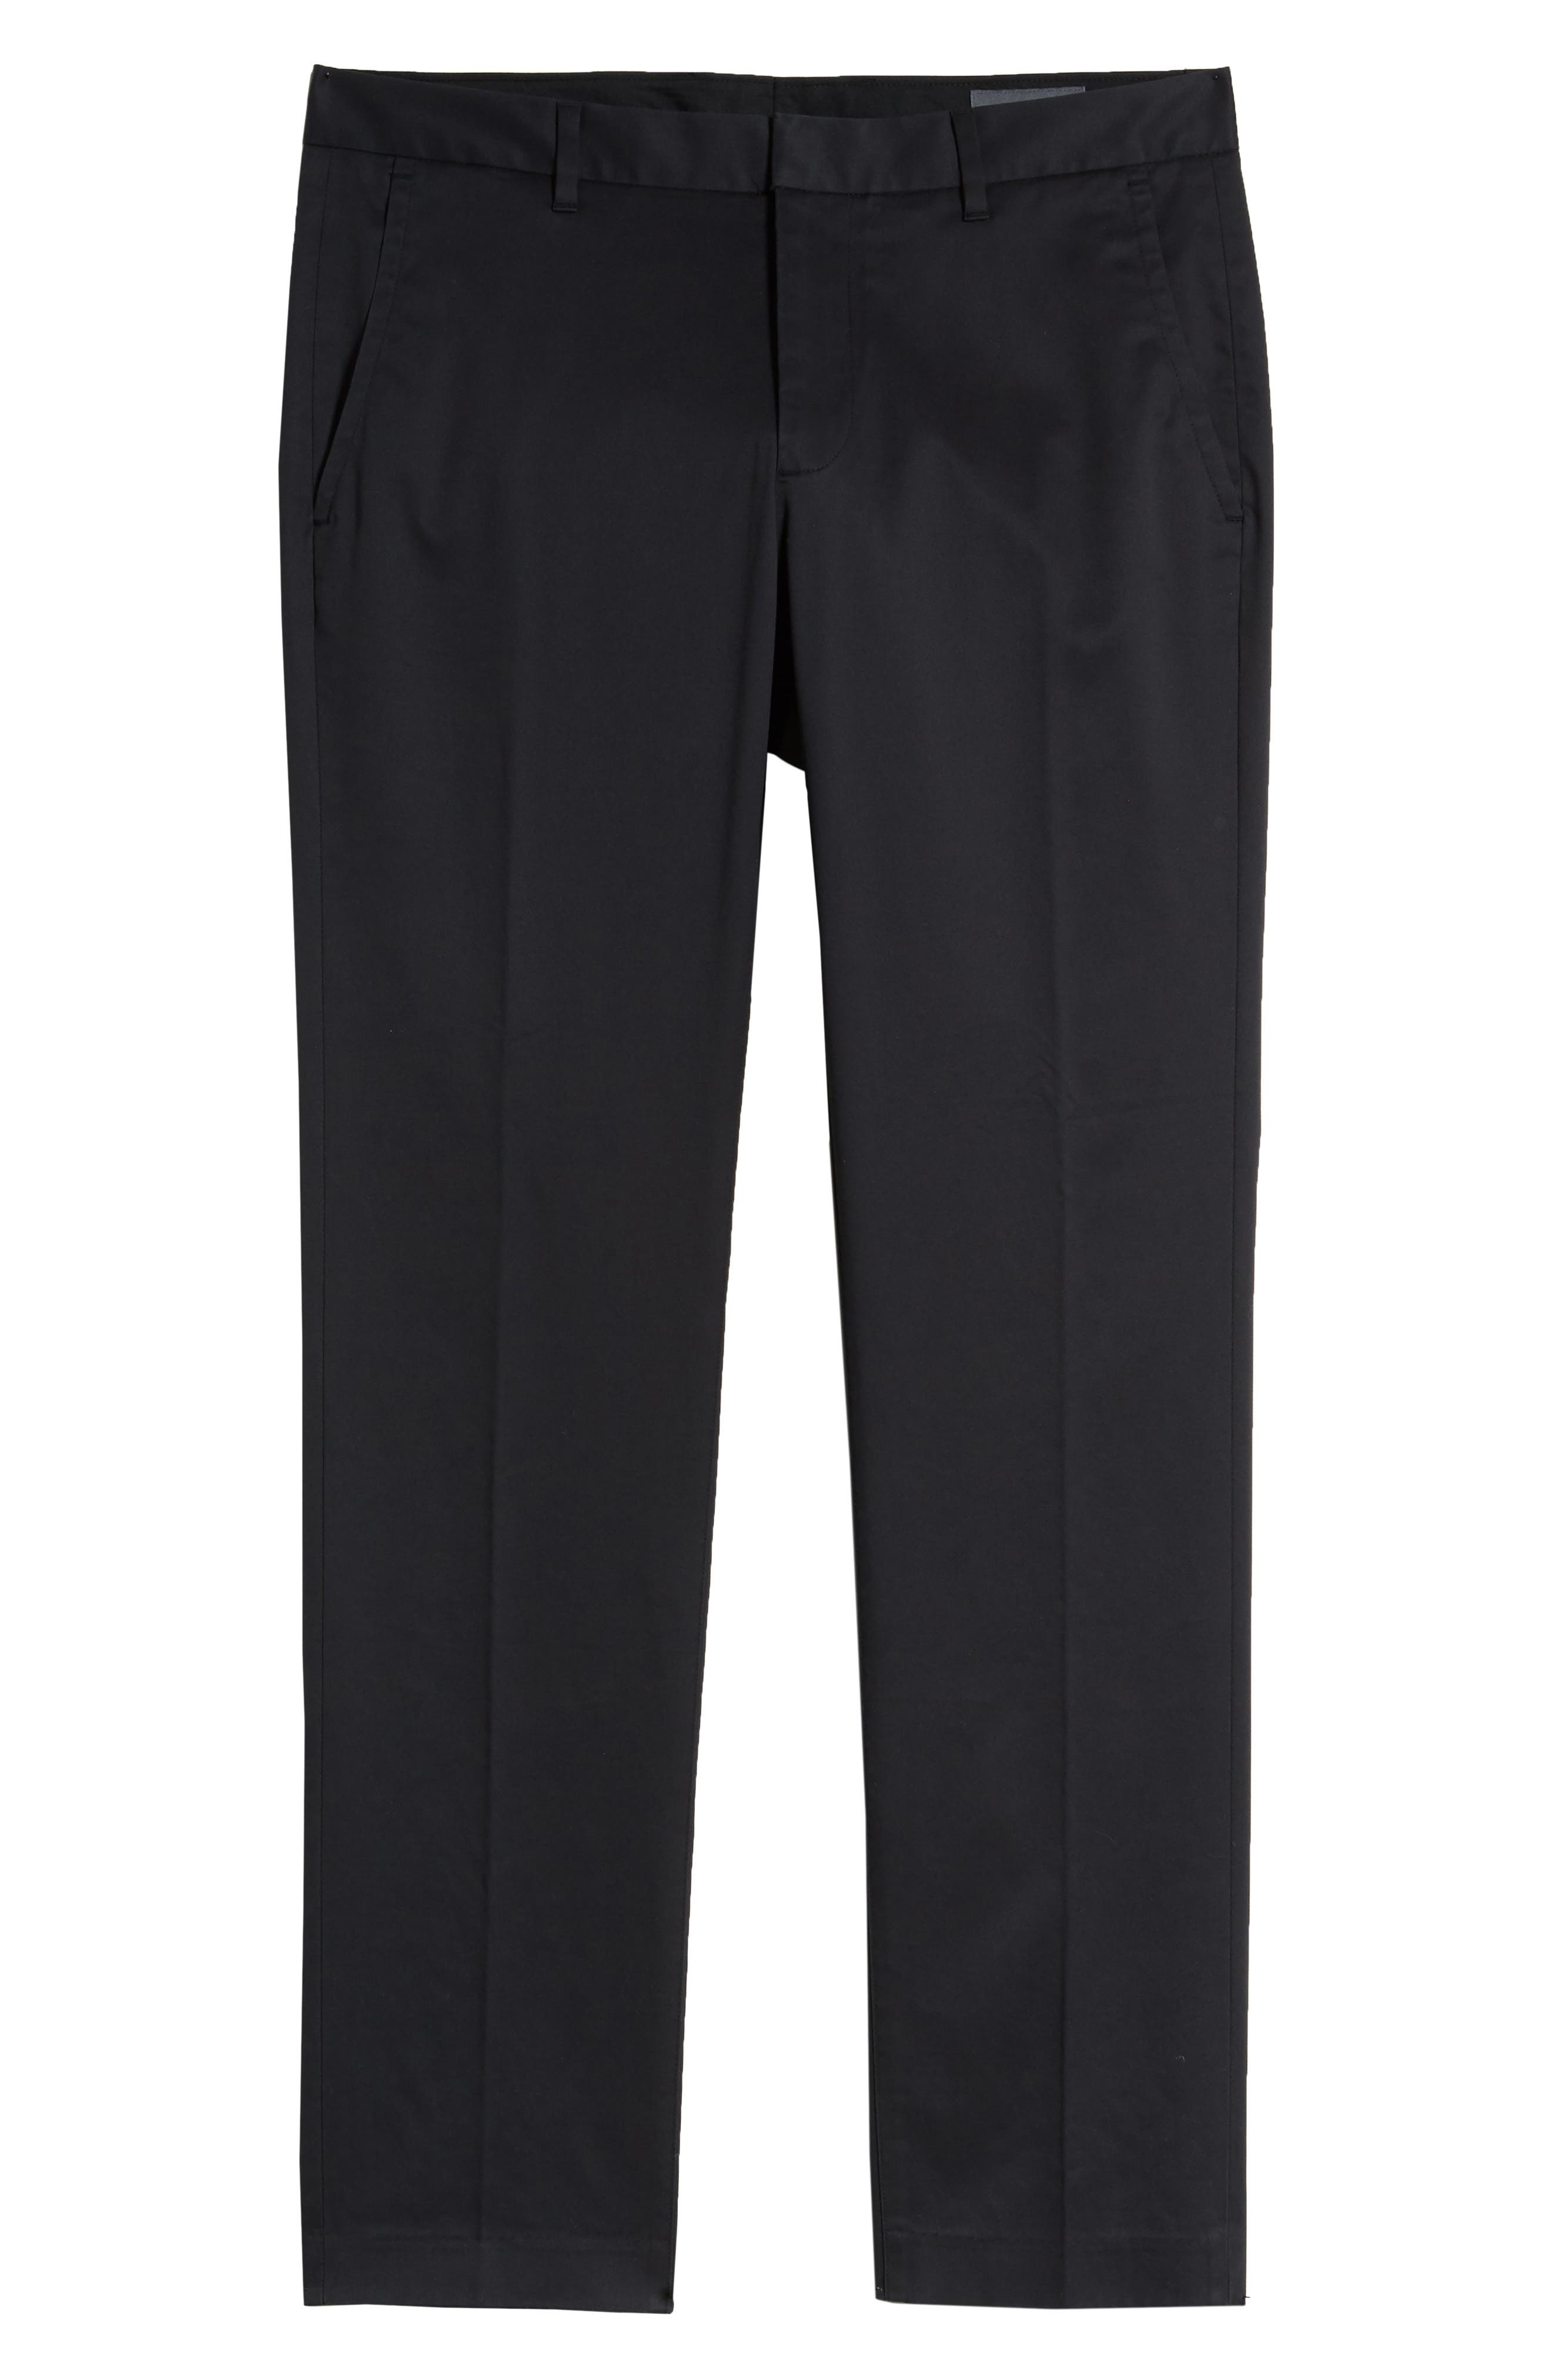 BONOBOS, Weekday Warrior Tailored Fit Stretch Dress Pants, Alternate thumbnail 7, color, BLACK